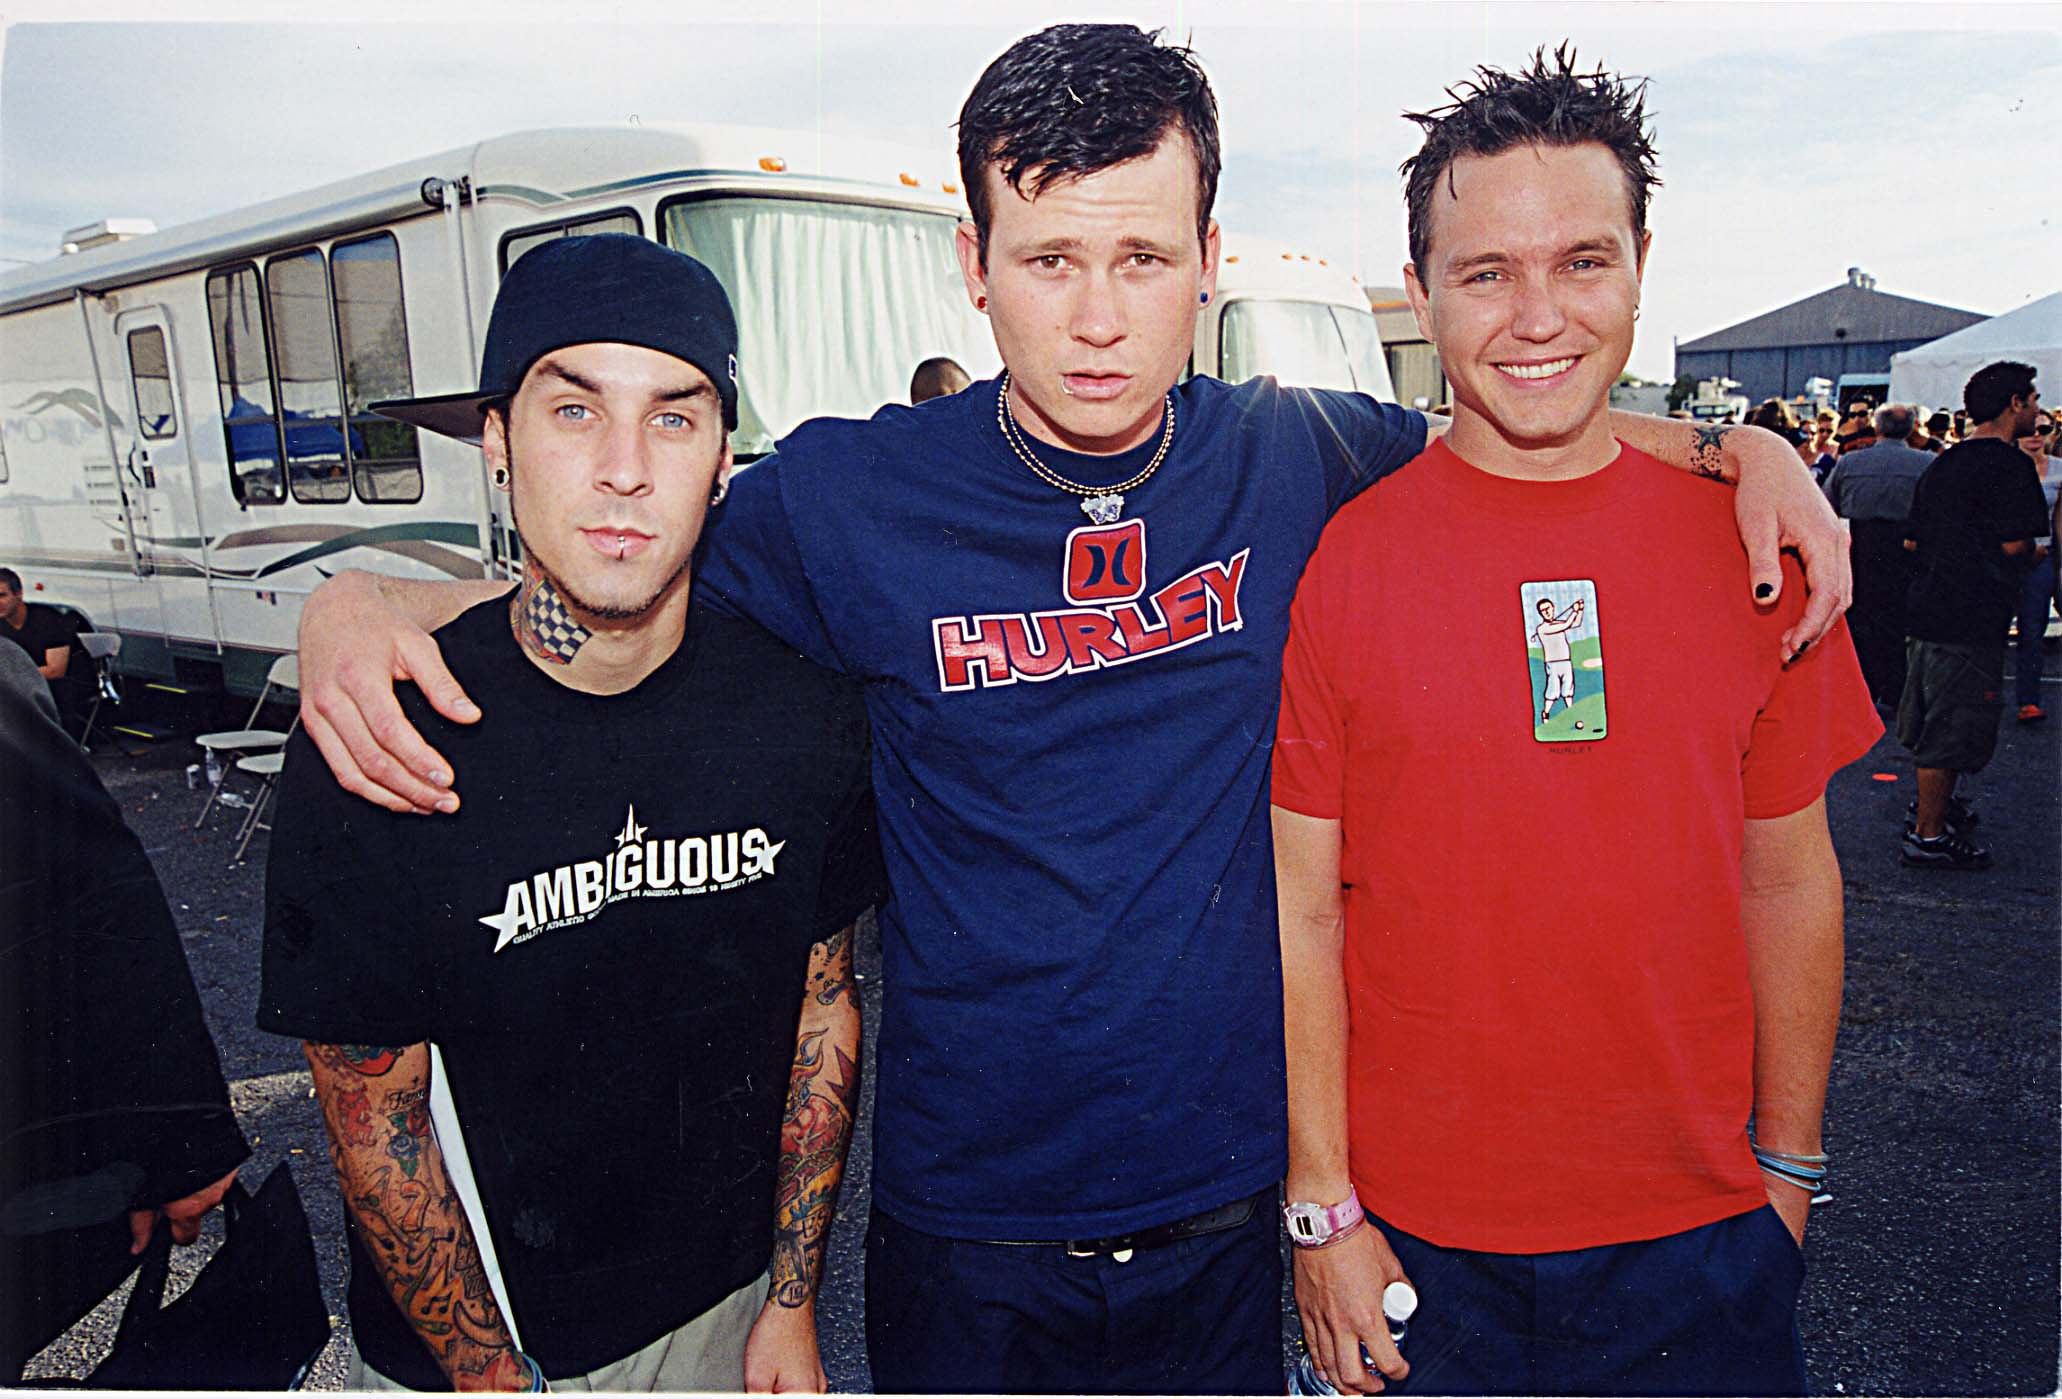 Travis Barker, Blink-182, where is he now